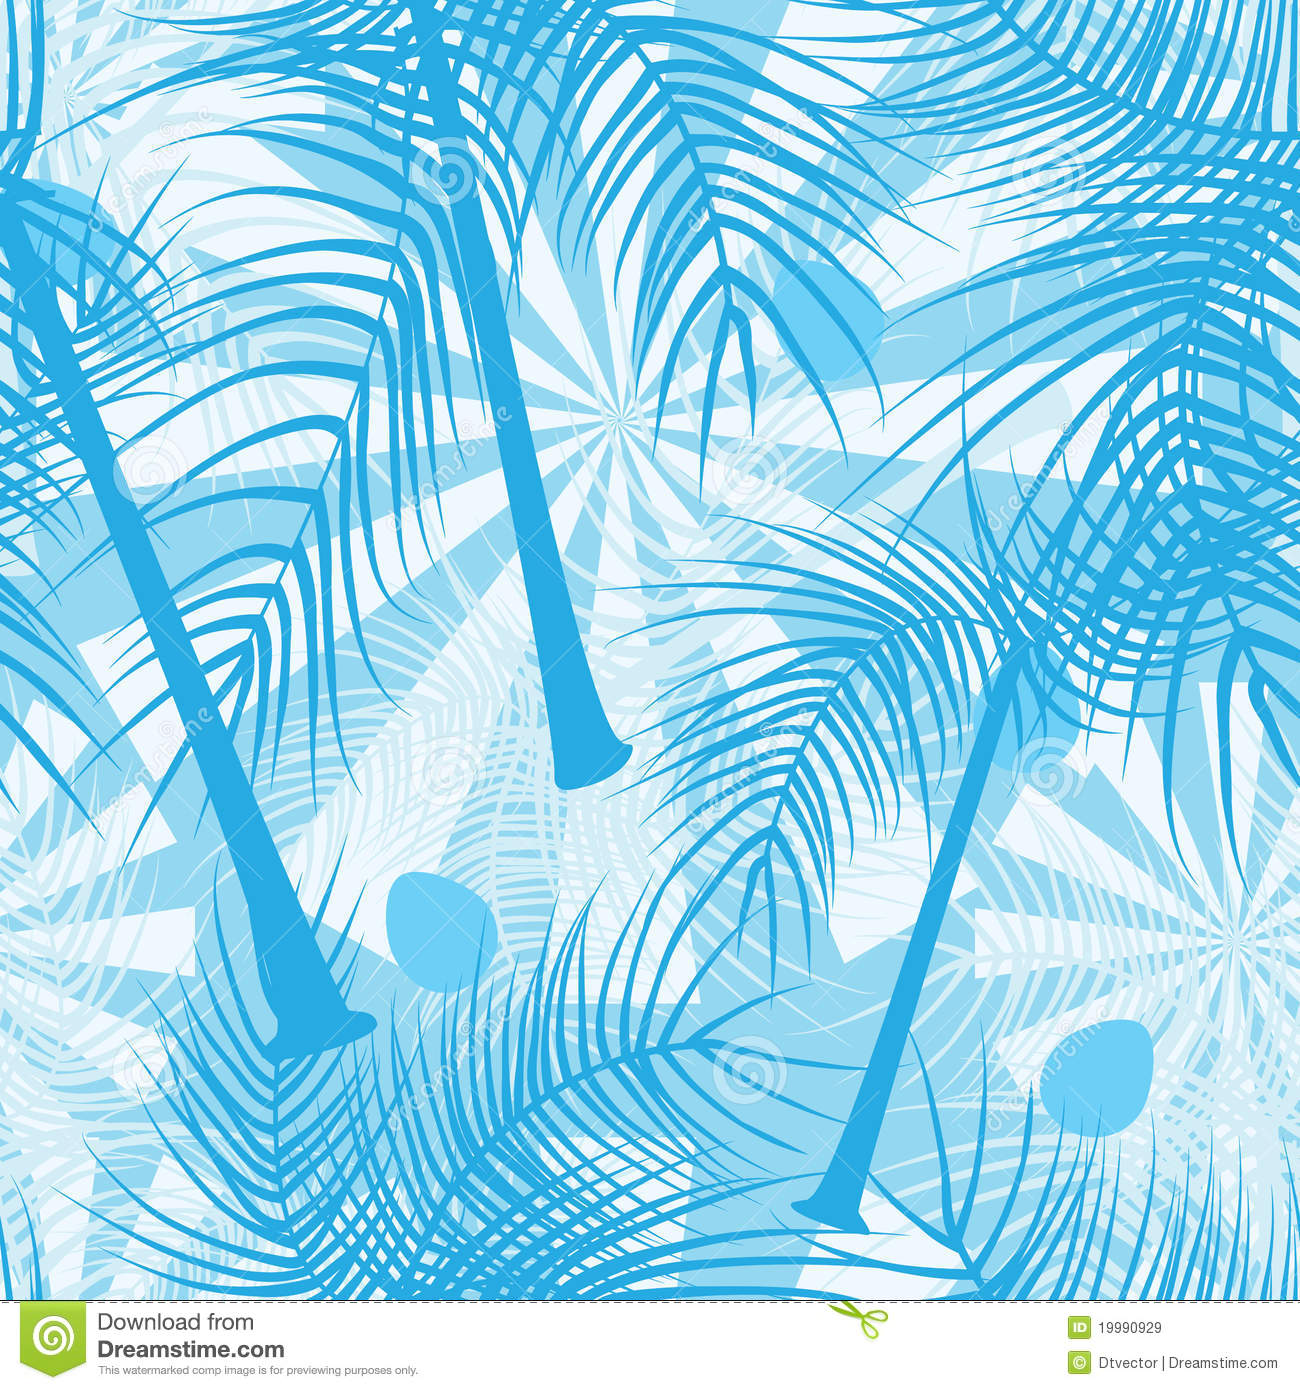 Animal Print Wallpaper Border Coconut Trees Blue Color Seamless Pattern Eps Royalty Free